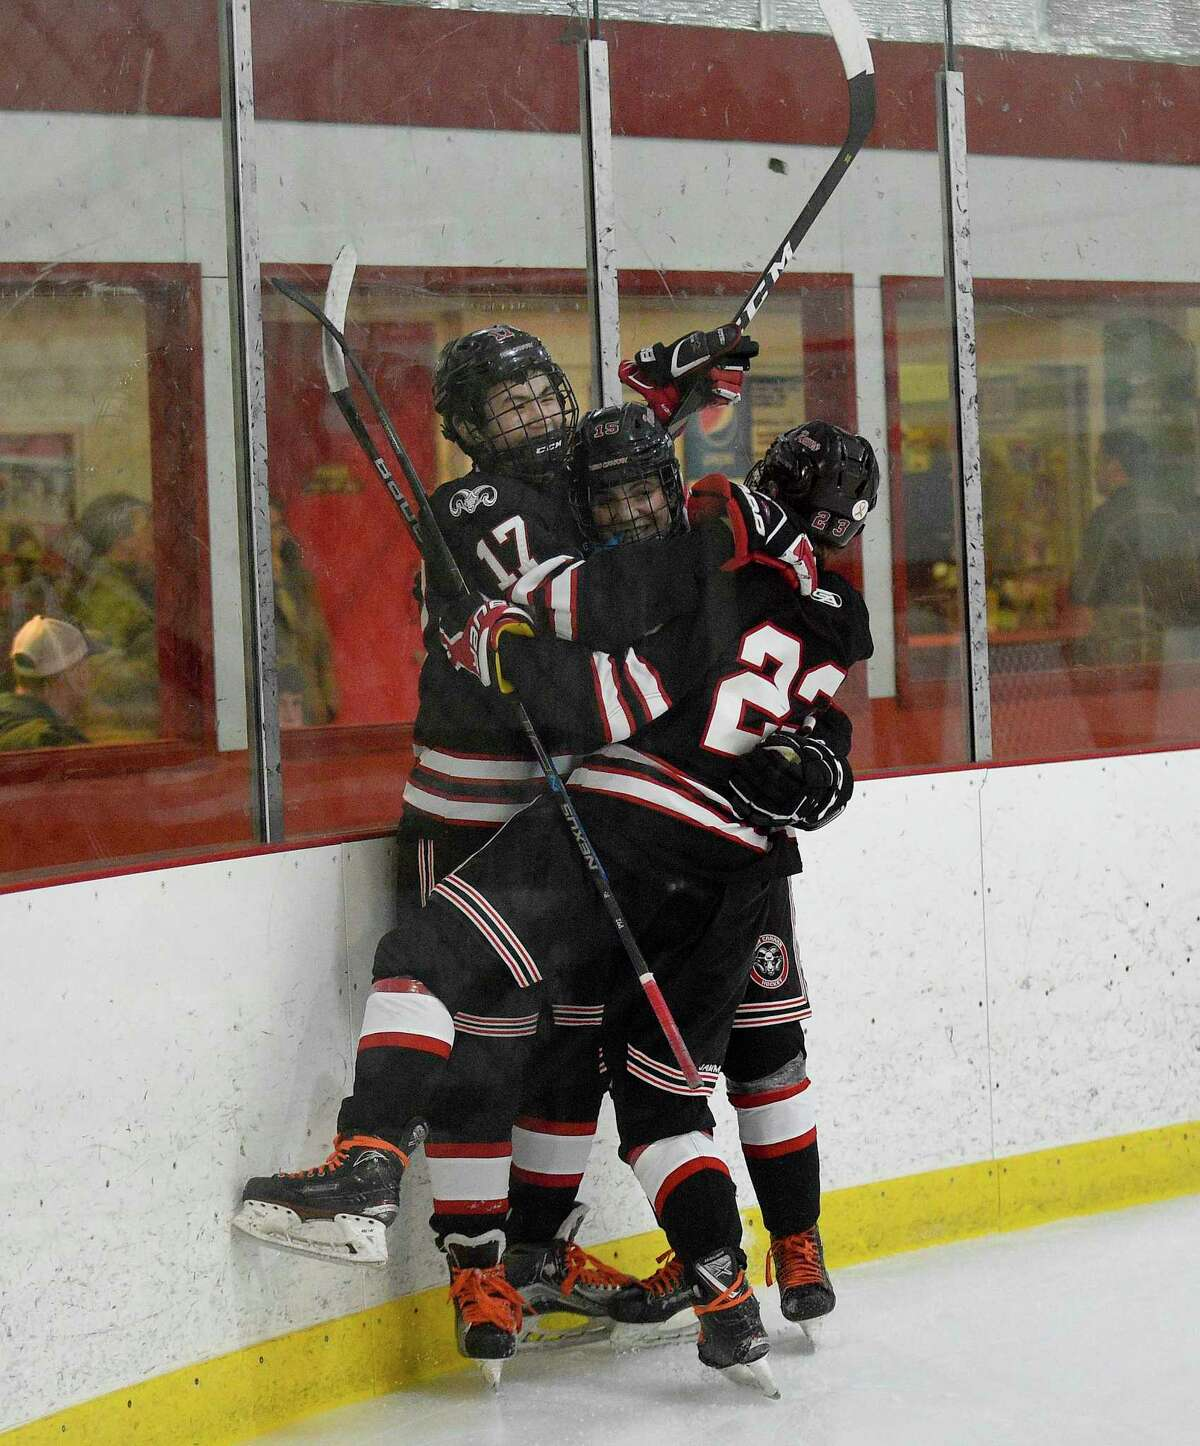 New Canaan's Justin Wietfeldt (17) celebrates his goal against Greenwich in an FCIAC boys hockey game at Dorothy Hamill Ice Rink on Thursday in Greenwich. No. 5 New Canaan defeated No. 4 Greenwich 3-2.